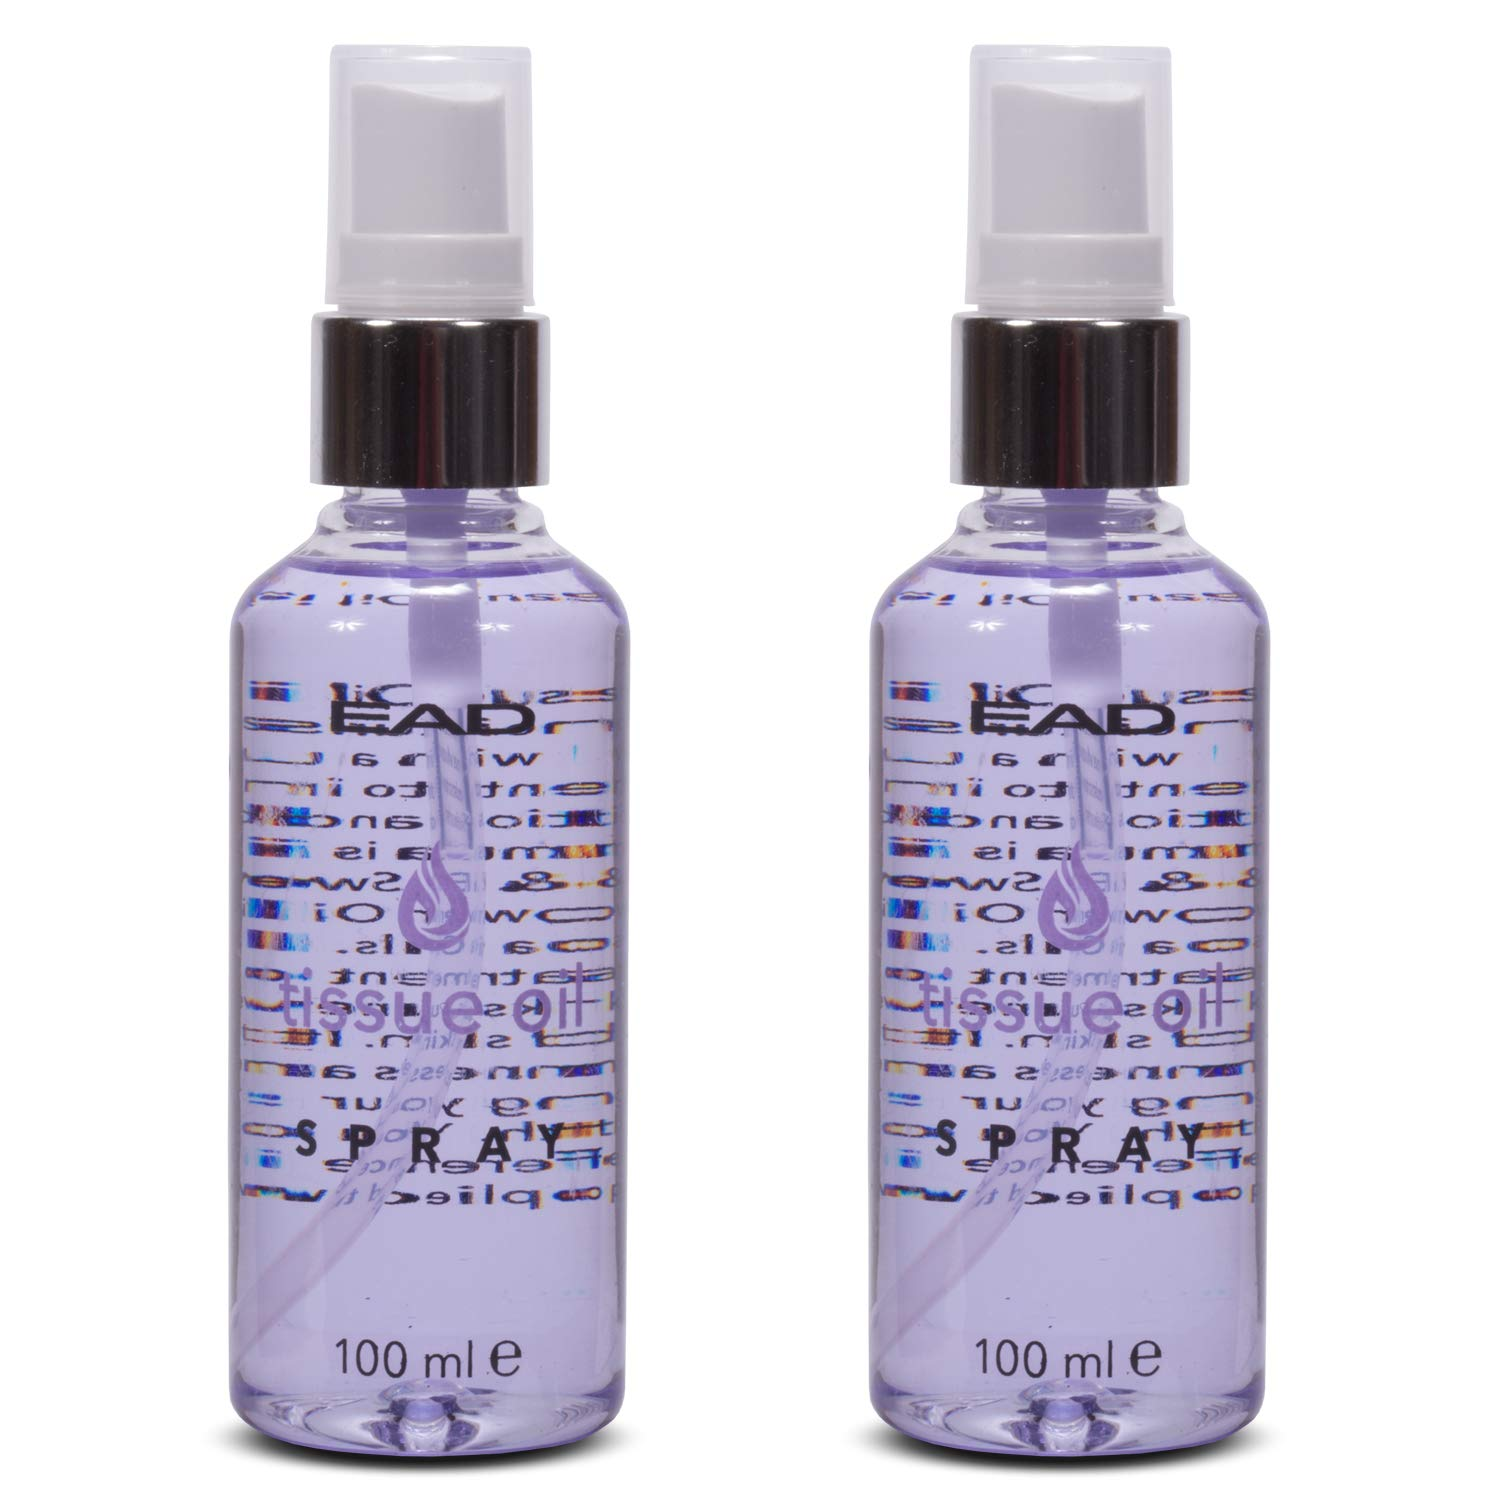 EAD Tissue Oil Spray Lavender 50ml Multiuse Skincare with Vitamin A & E for Scars, Uneven Skin Tone, and Dry, Dehydrated Skin (2 pack)